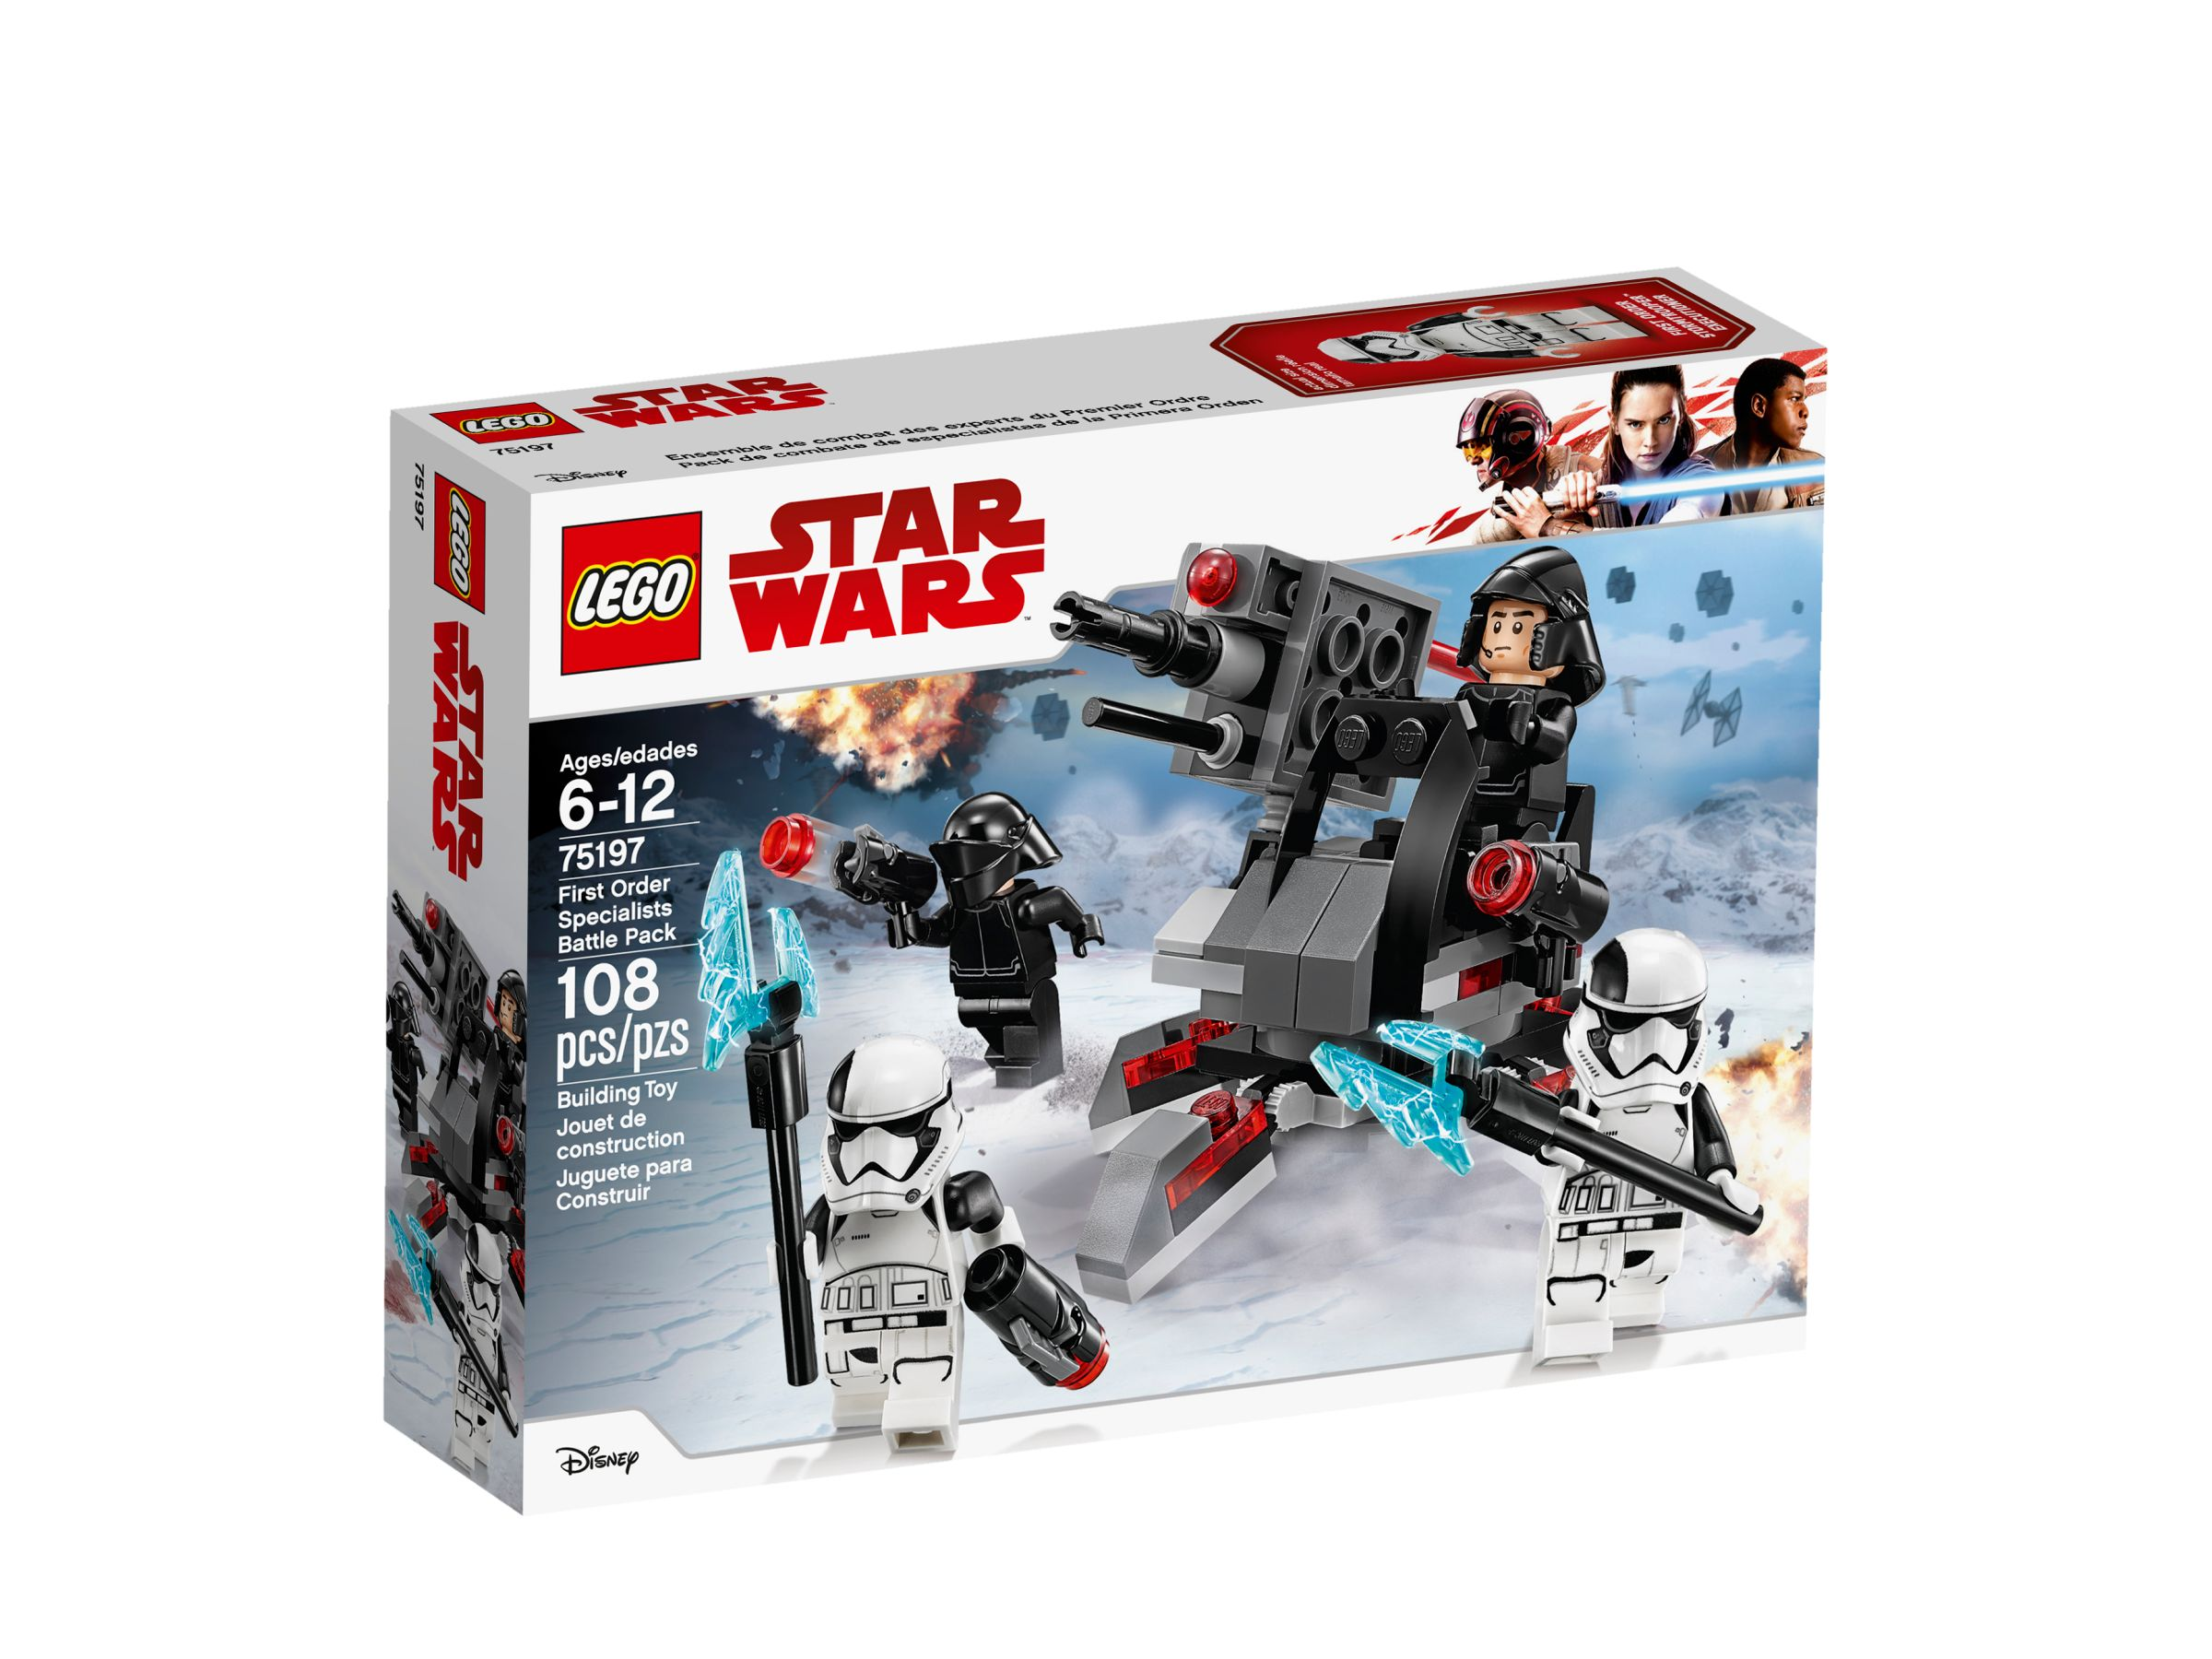 LEGO Star Wars 75197 First Order Specialists Battle Pack LEGO_75197_alt1.jpg